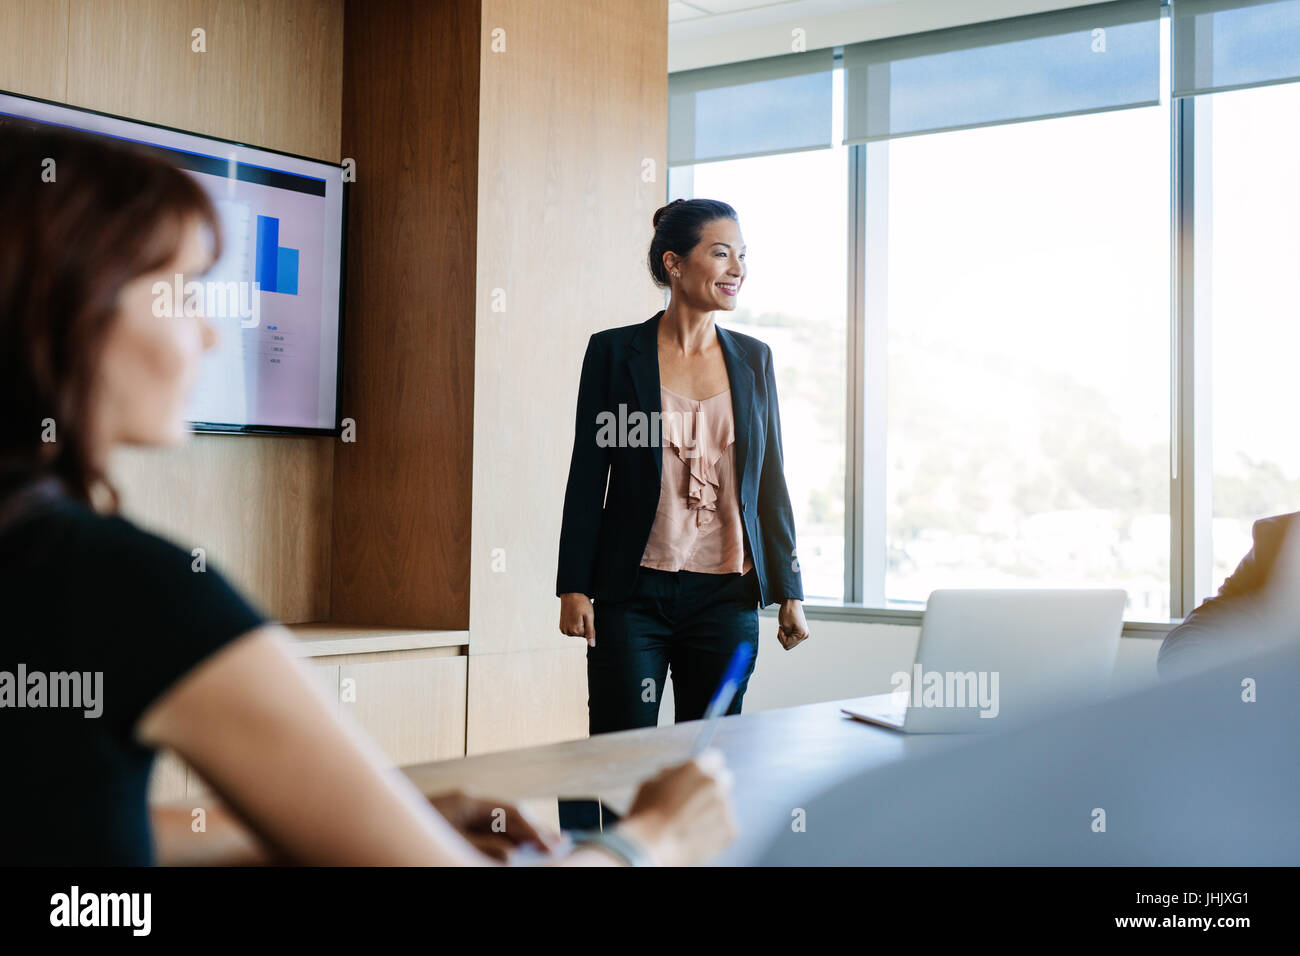 Asian businesswoman explaining plans to colleagues in conference room. Business presentation in board room. - Stock Image